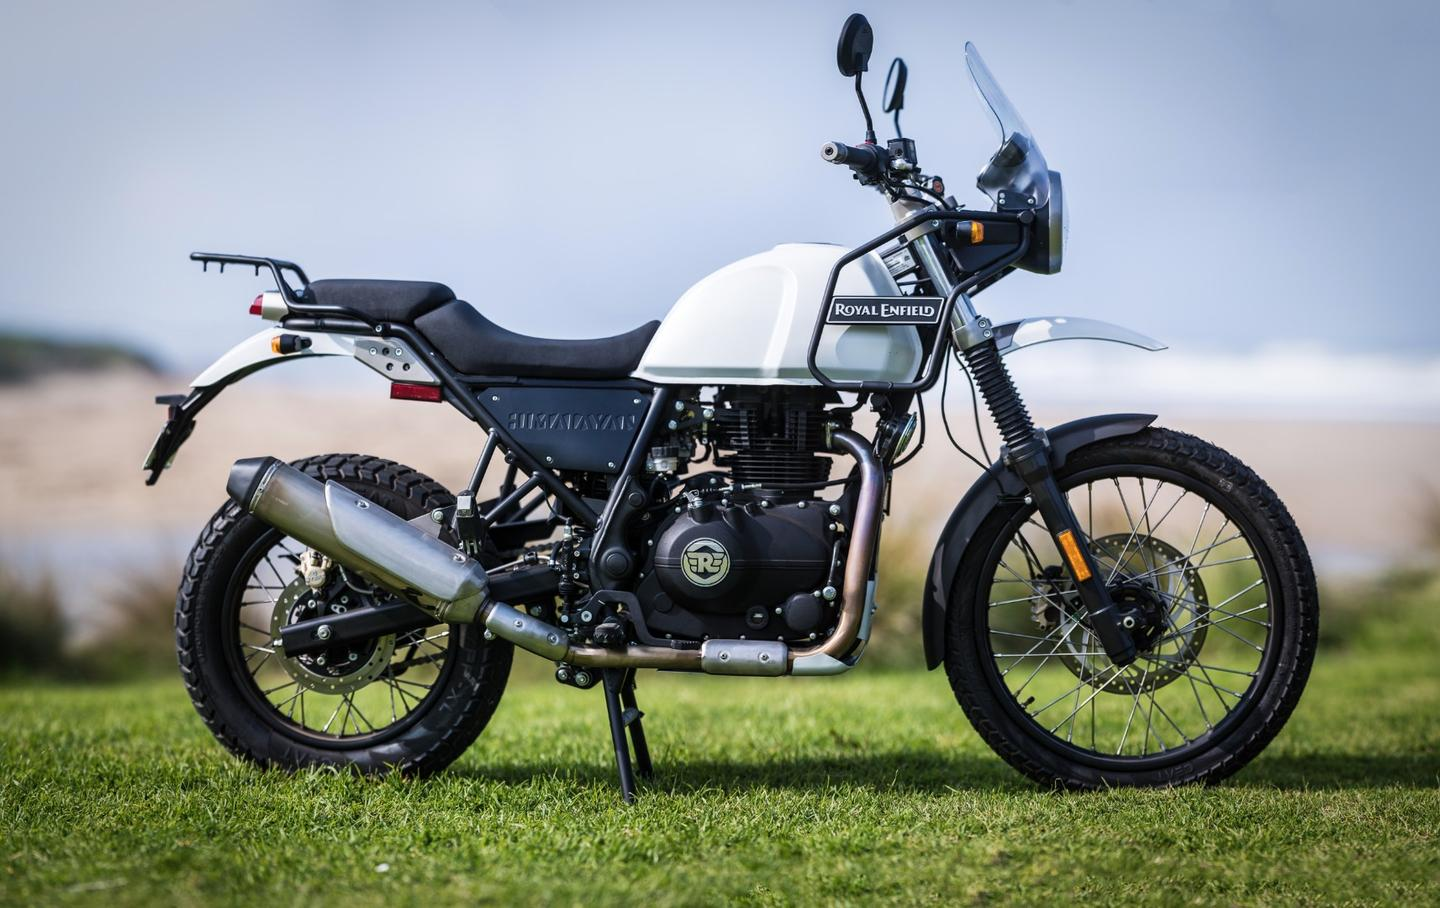 2017 Royal Enfield Himalayan: distinctive looks, if not particularly handsome